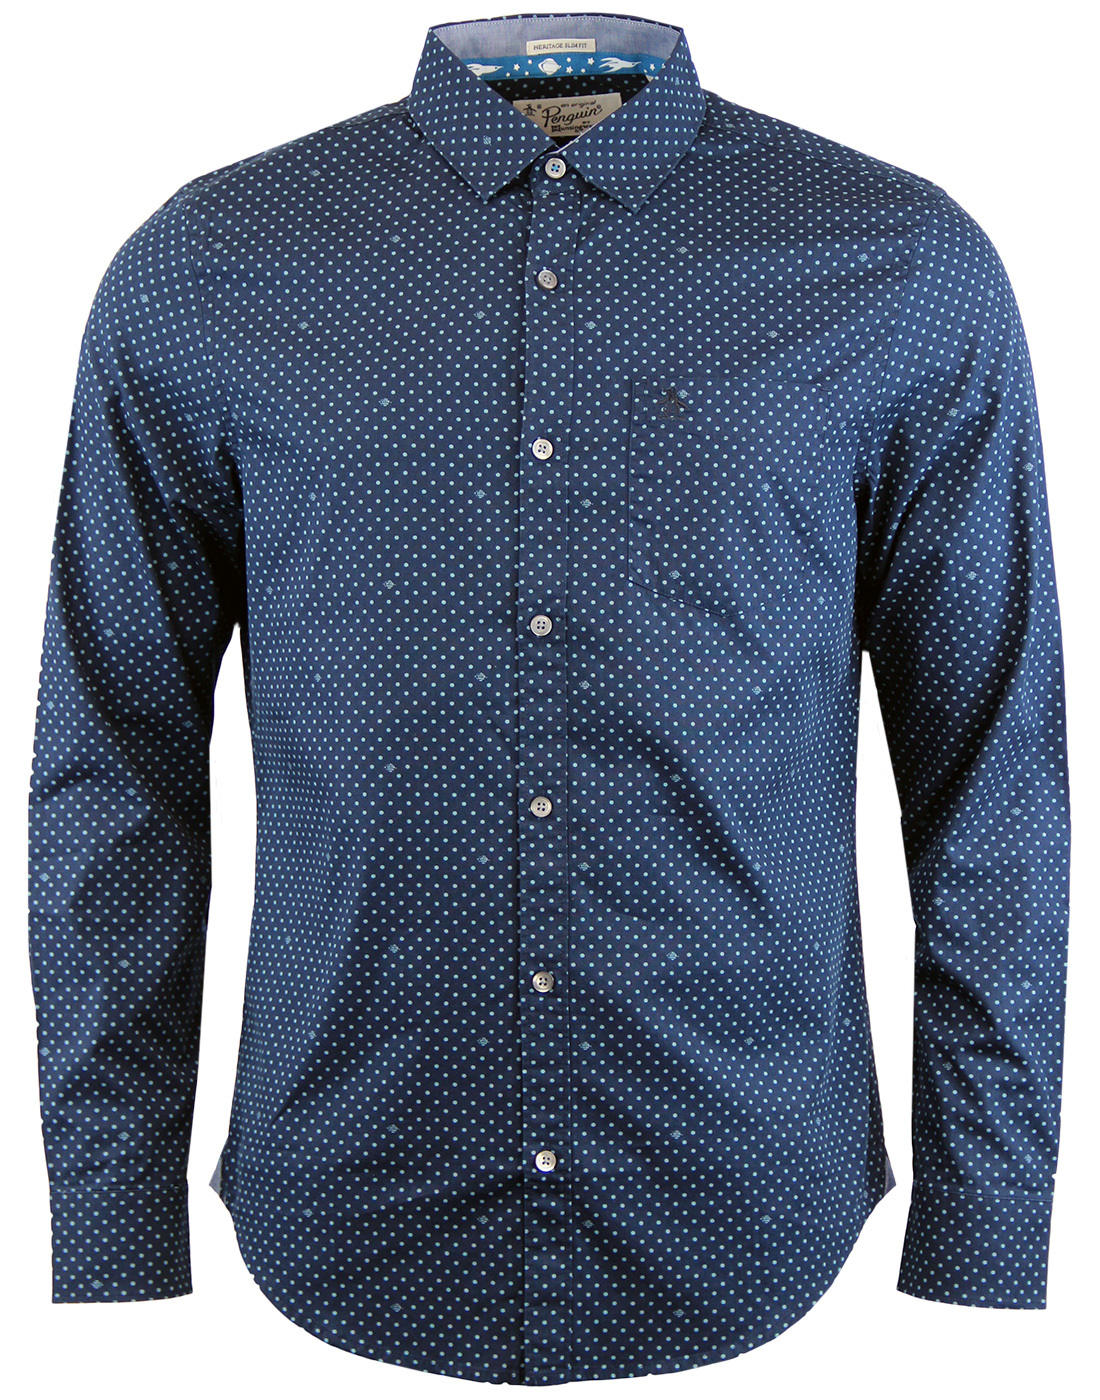 ORIGINAL PENGUIN Space Spot Mod 60s Poplin Shirt